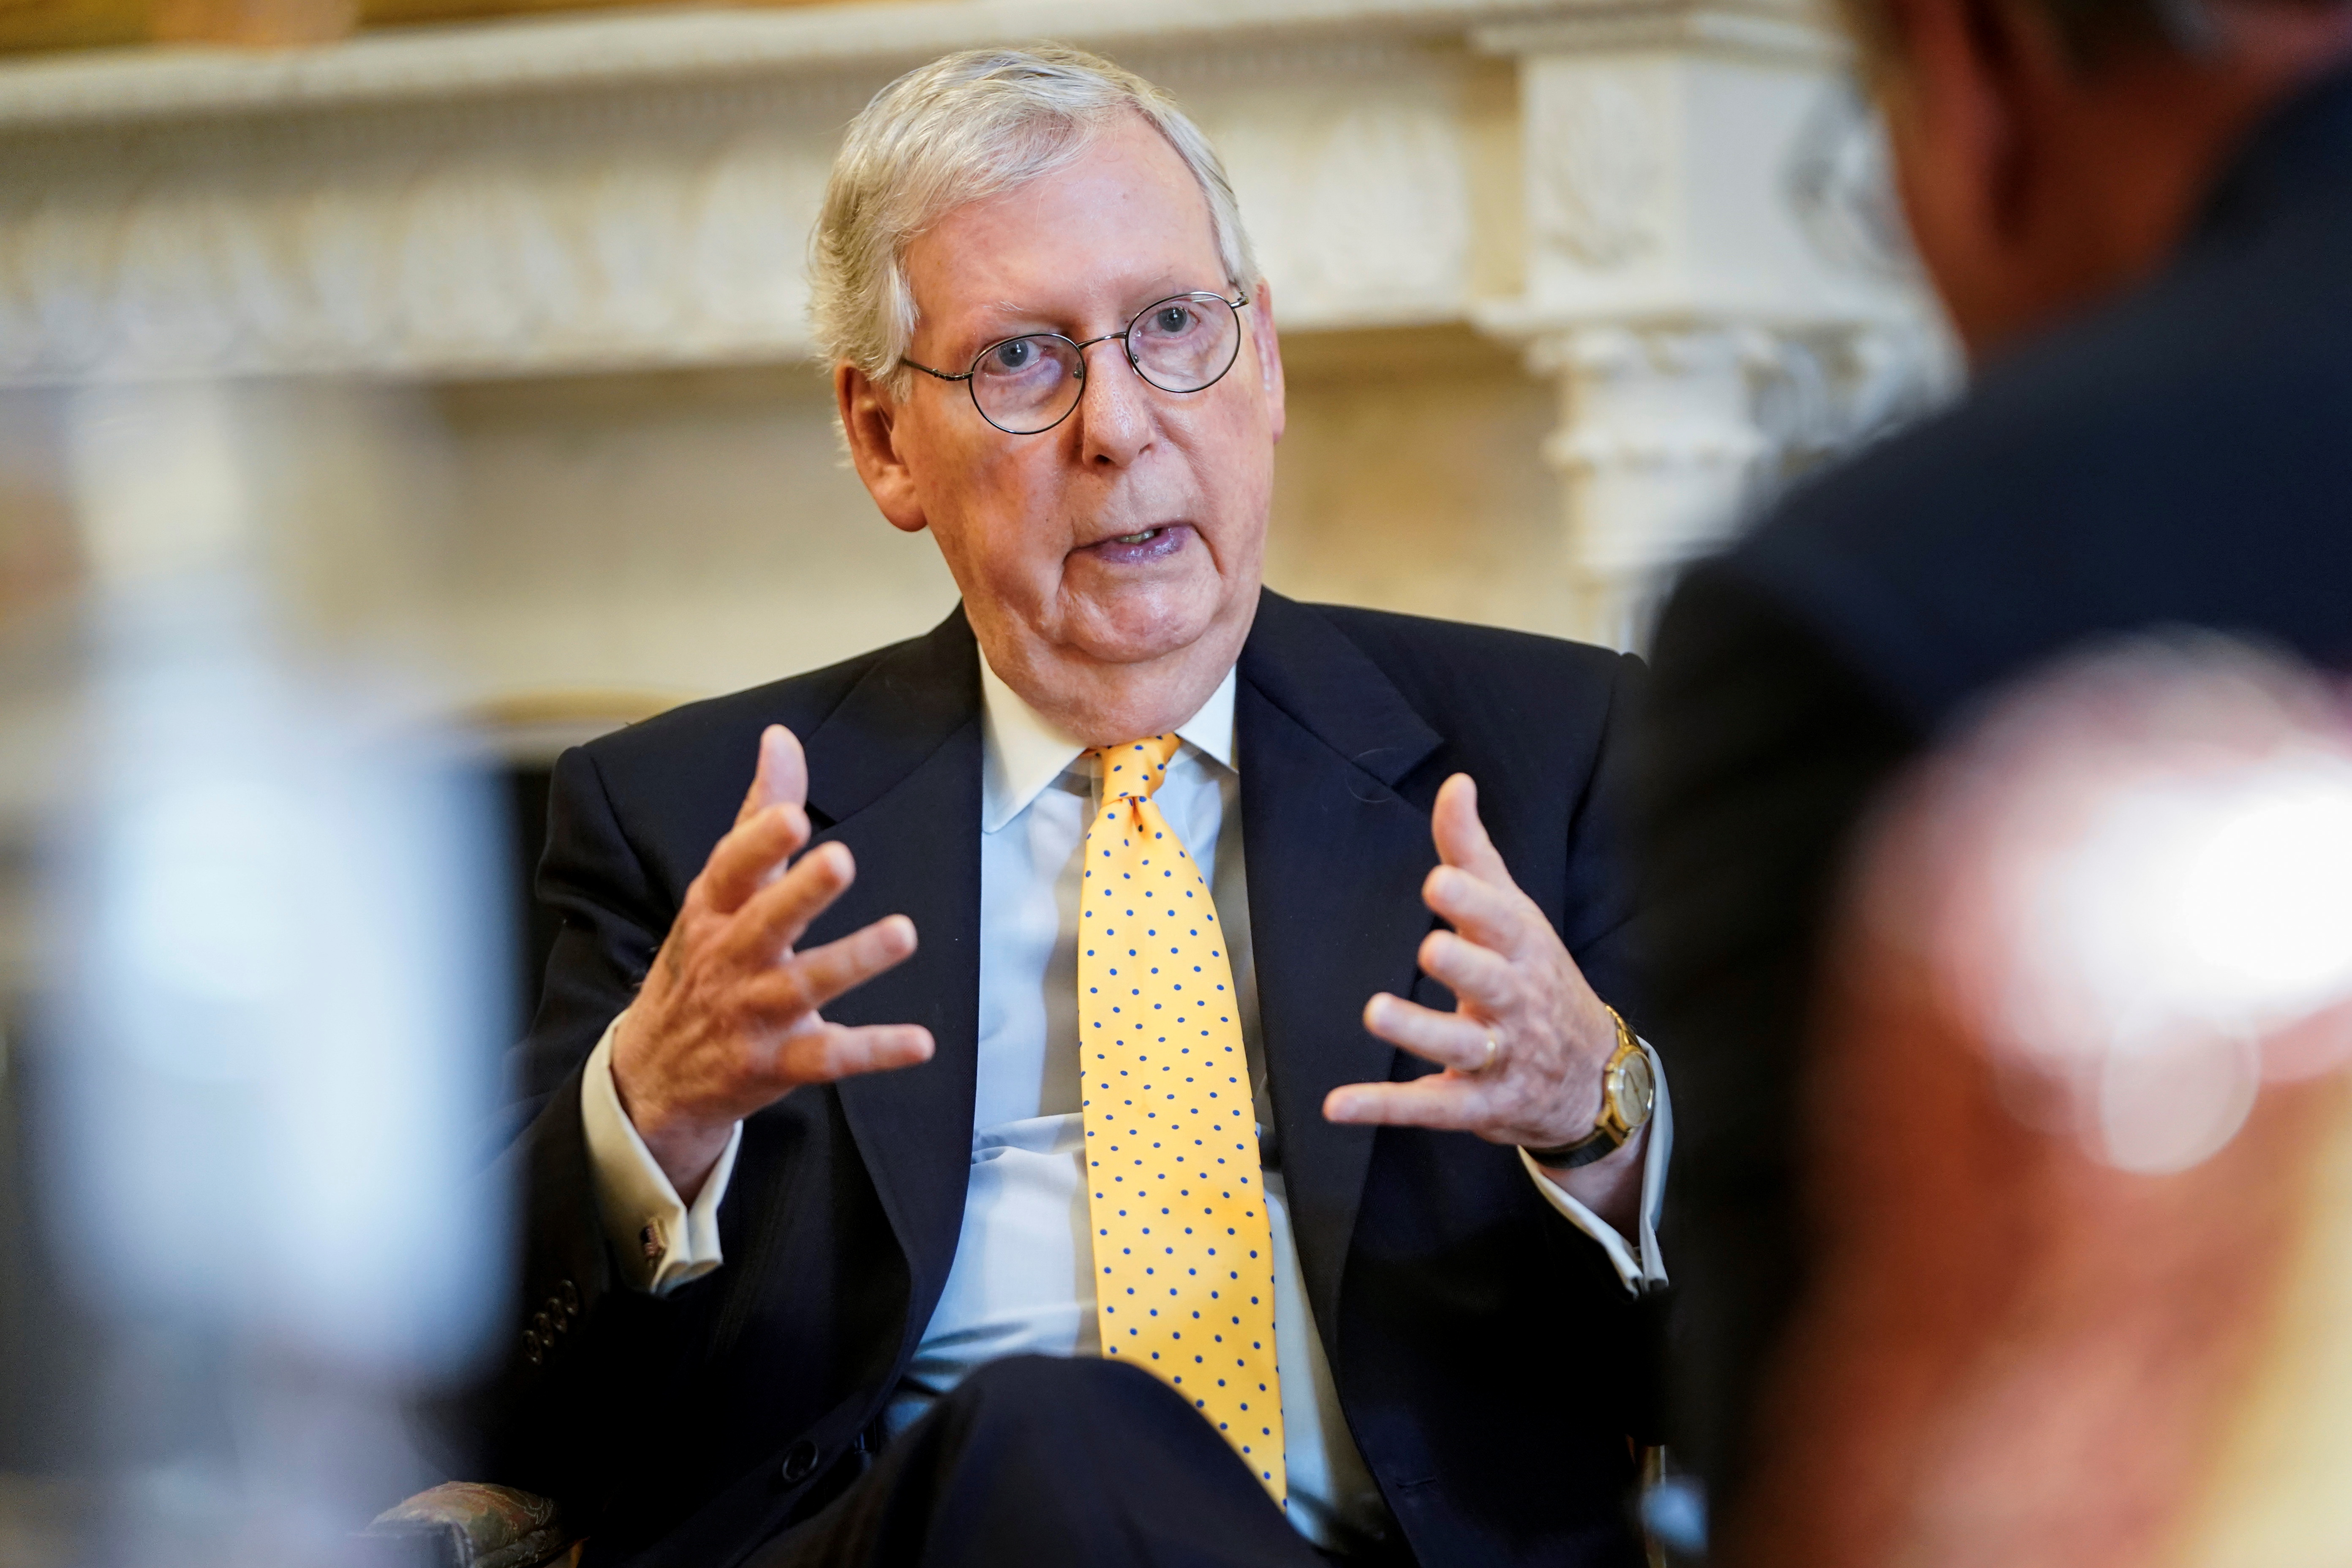 Senate Minority Leader Mitch McConnell (R-KY) speaks during an interview with Reuters on Capitol Hill in Washington, U.S., July 27, 2021.      REUTERS/Joshua Roberts